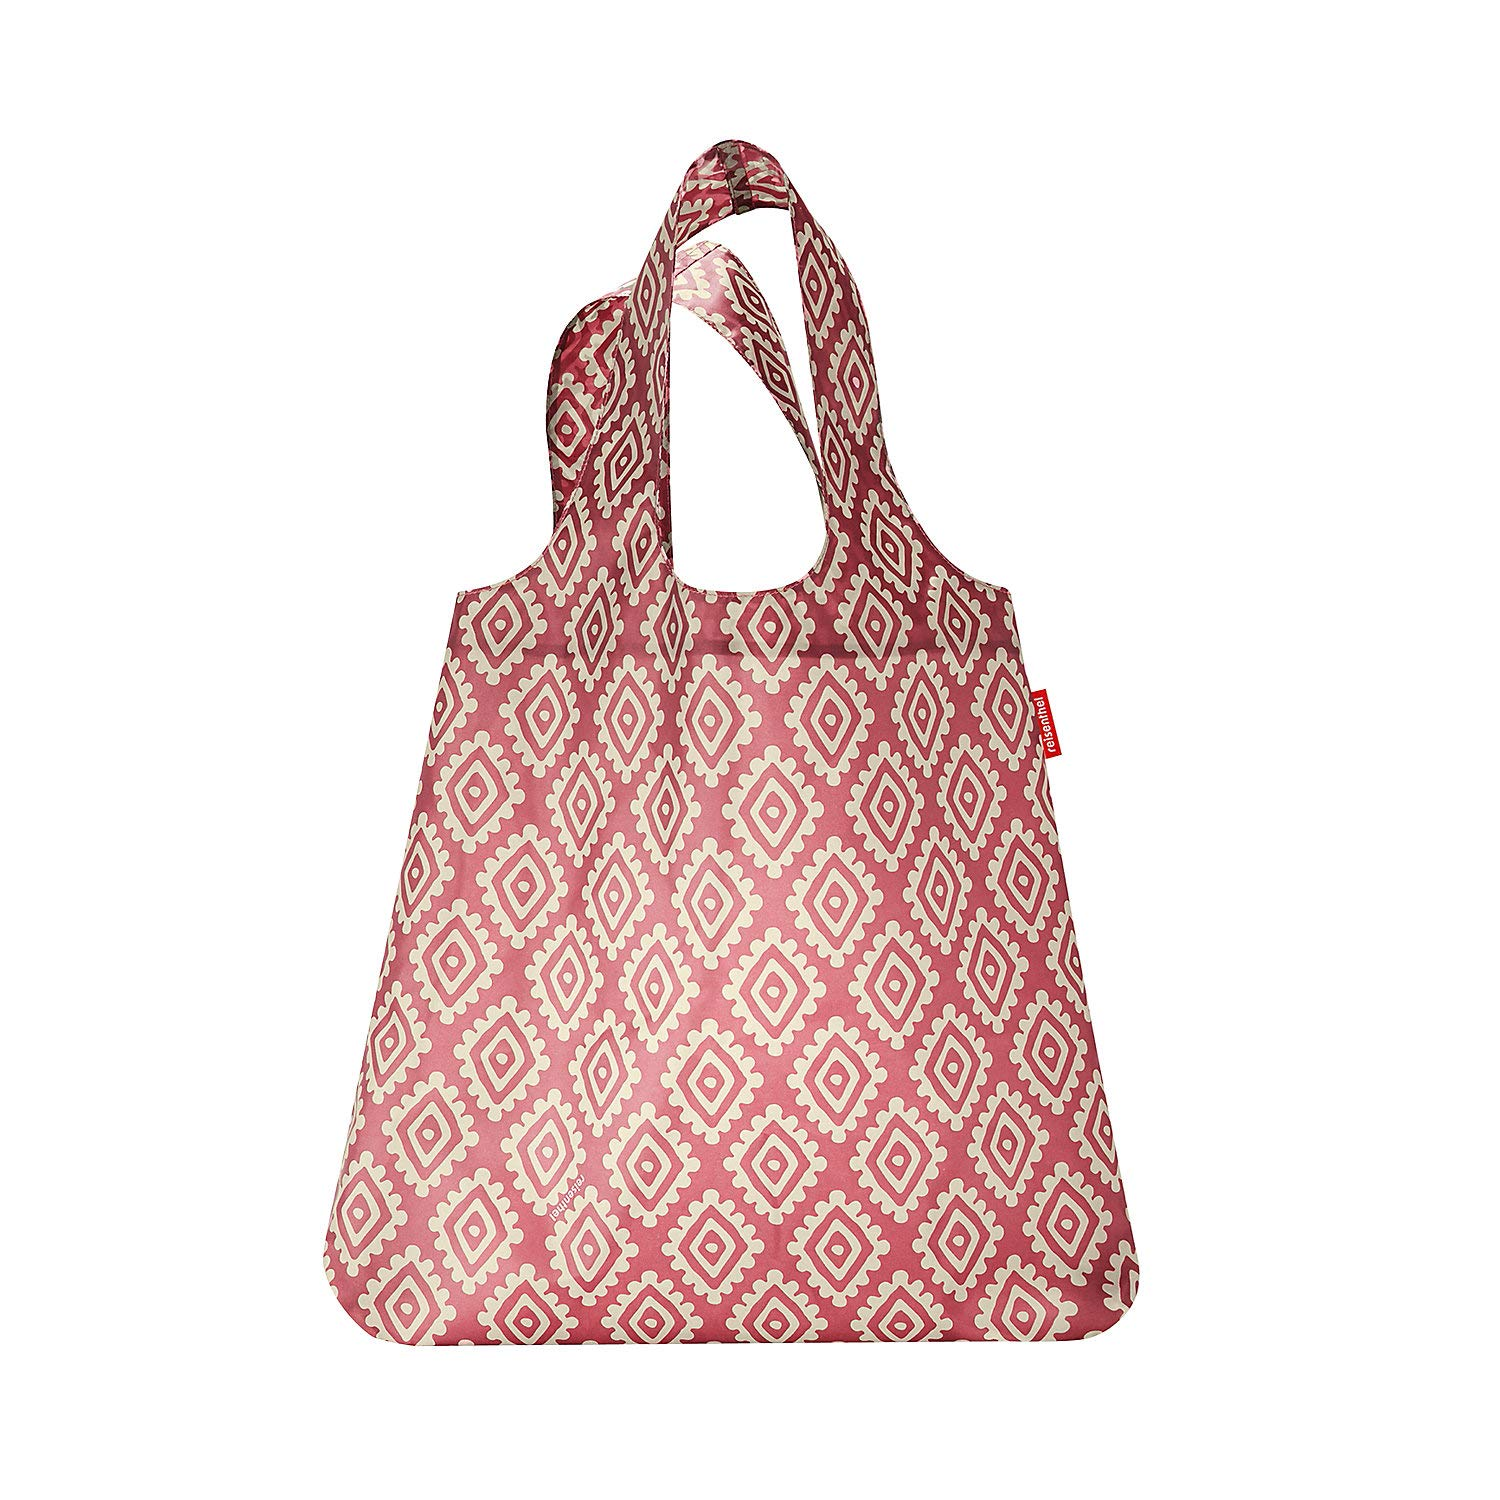 Reisenthel Mini Maxi Shopper Bolso Bandolera, 60 cm, 15 Liters, Marró n (Diamonds Mocha) Marrón (Diamonds Mocha) AT6039